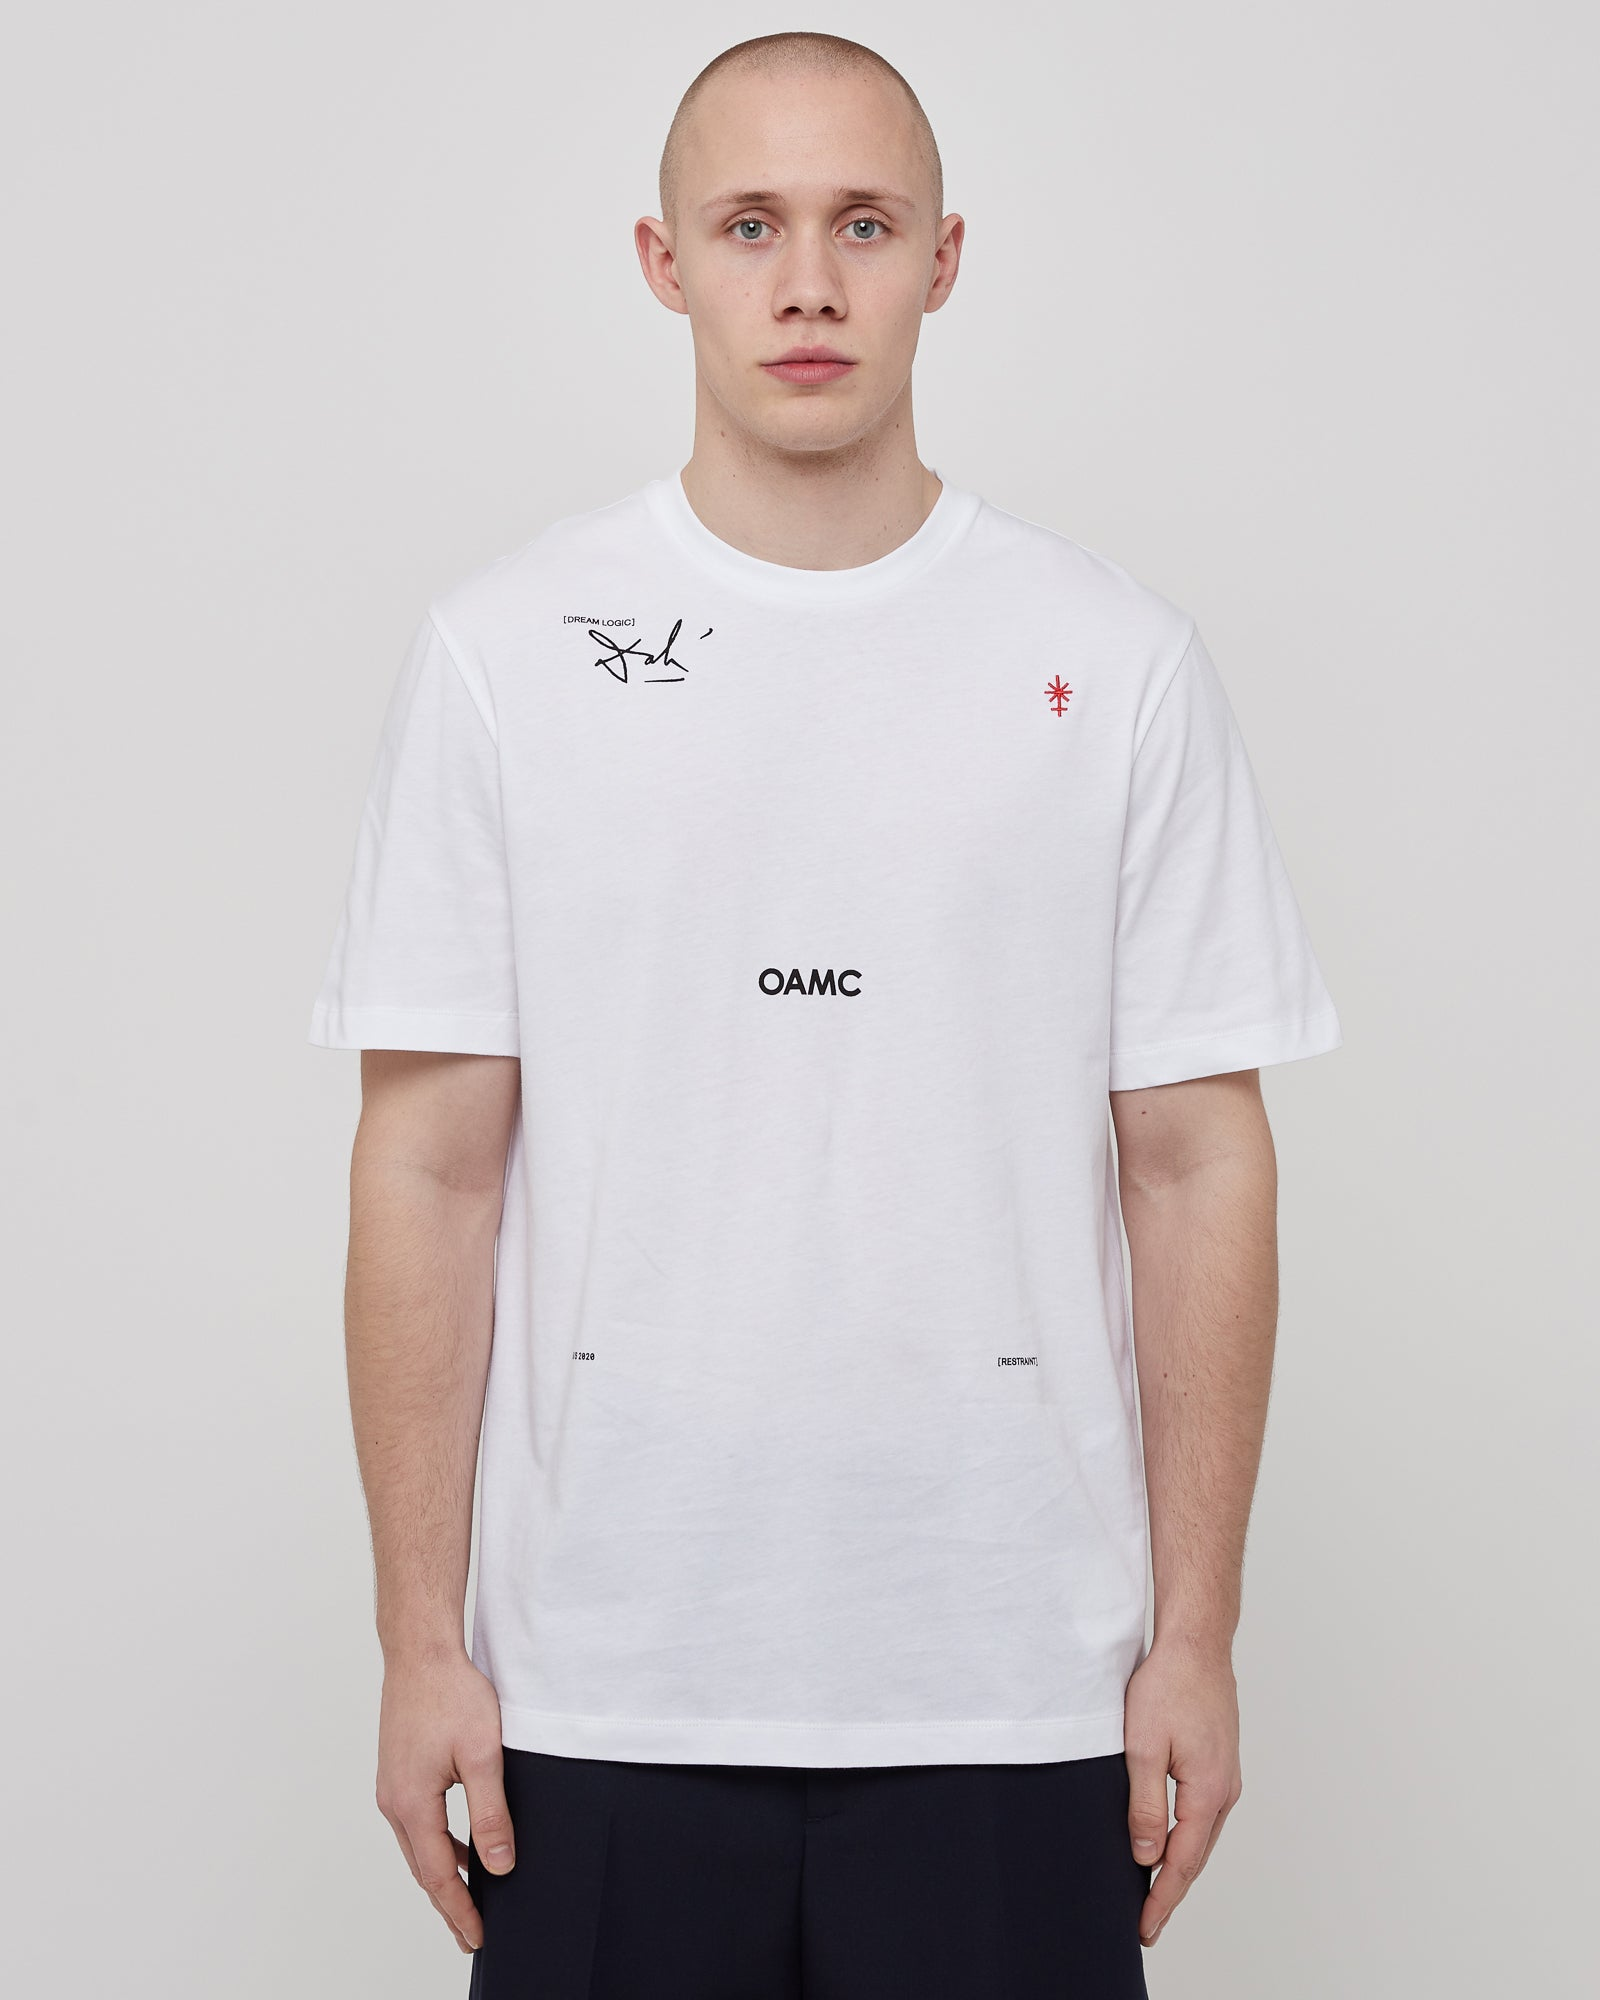 Logic T-Shirt in White